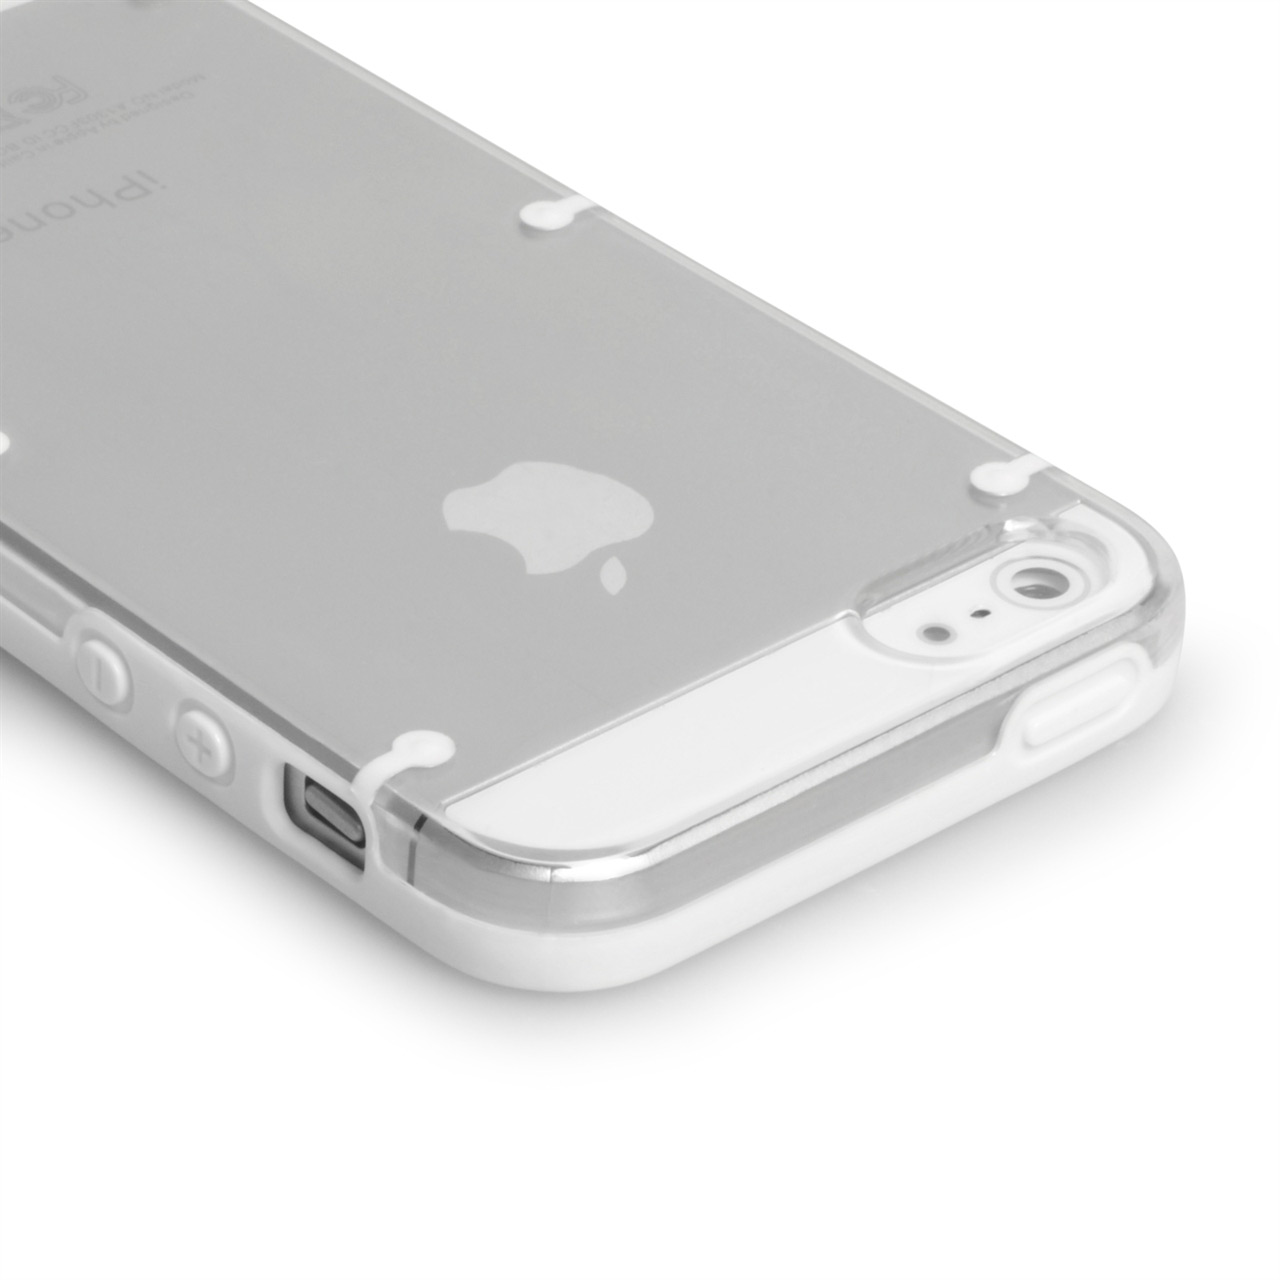 YouSave Accessories iPhone 5 / 5S Hard Case - White and Clear